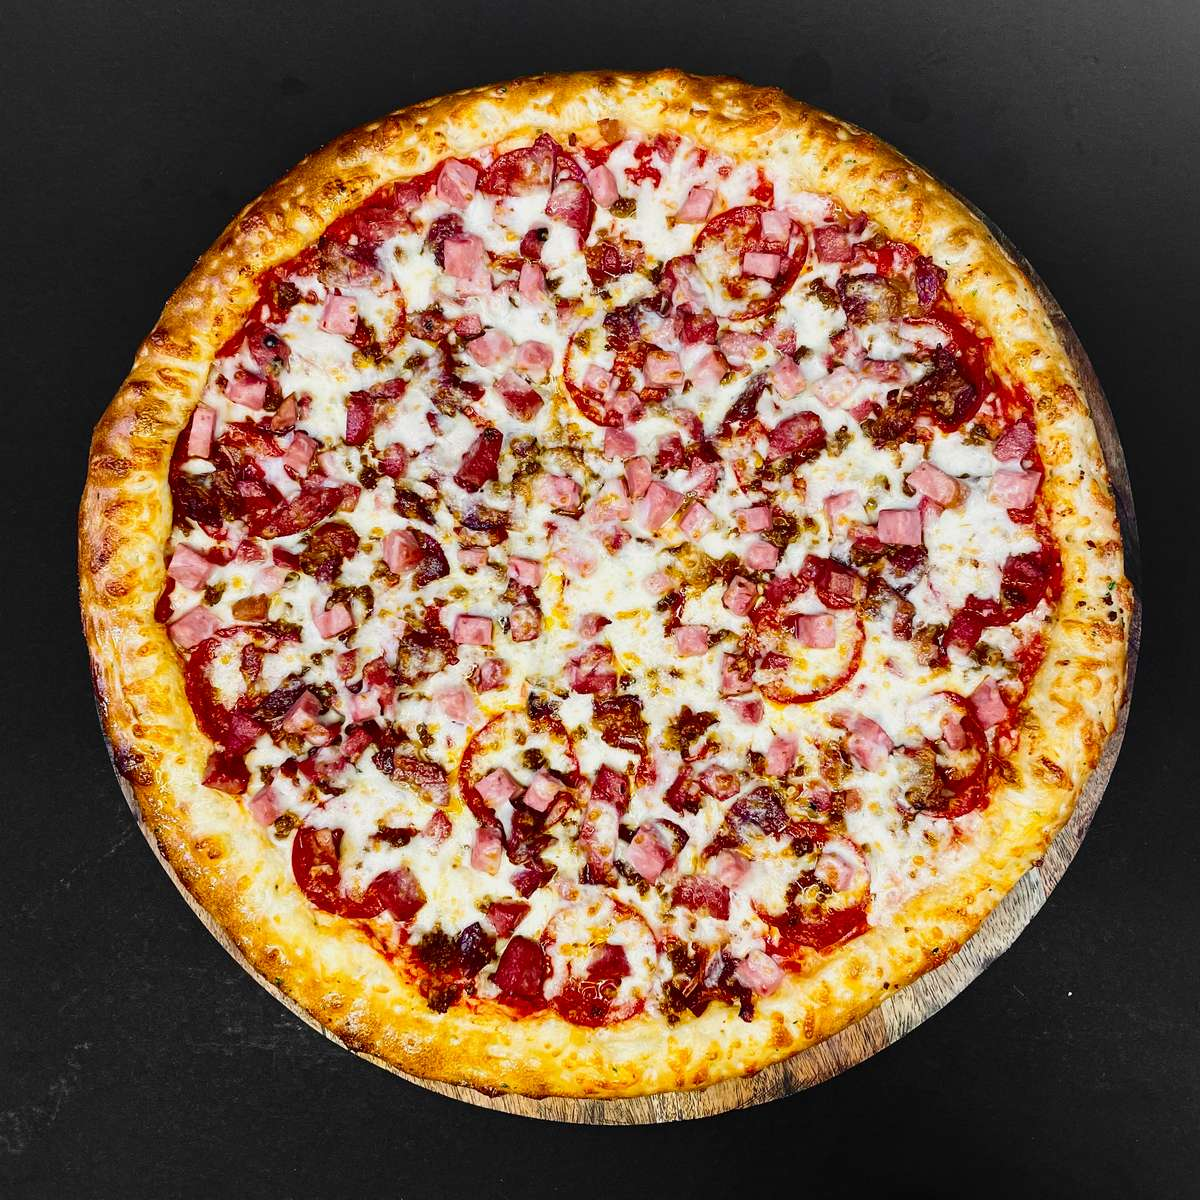 Meatlover's Pizza